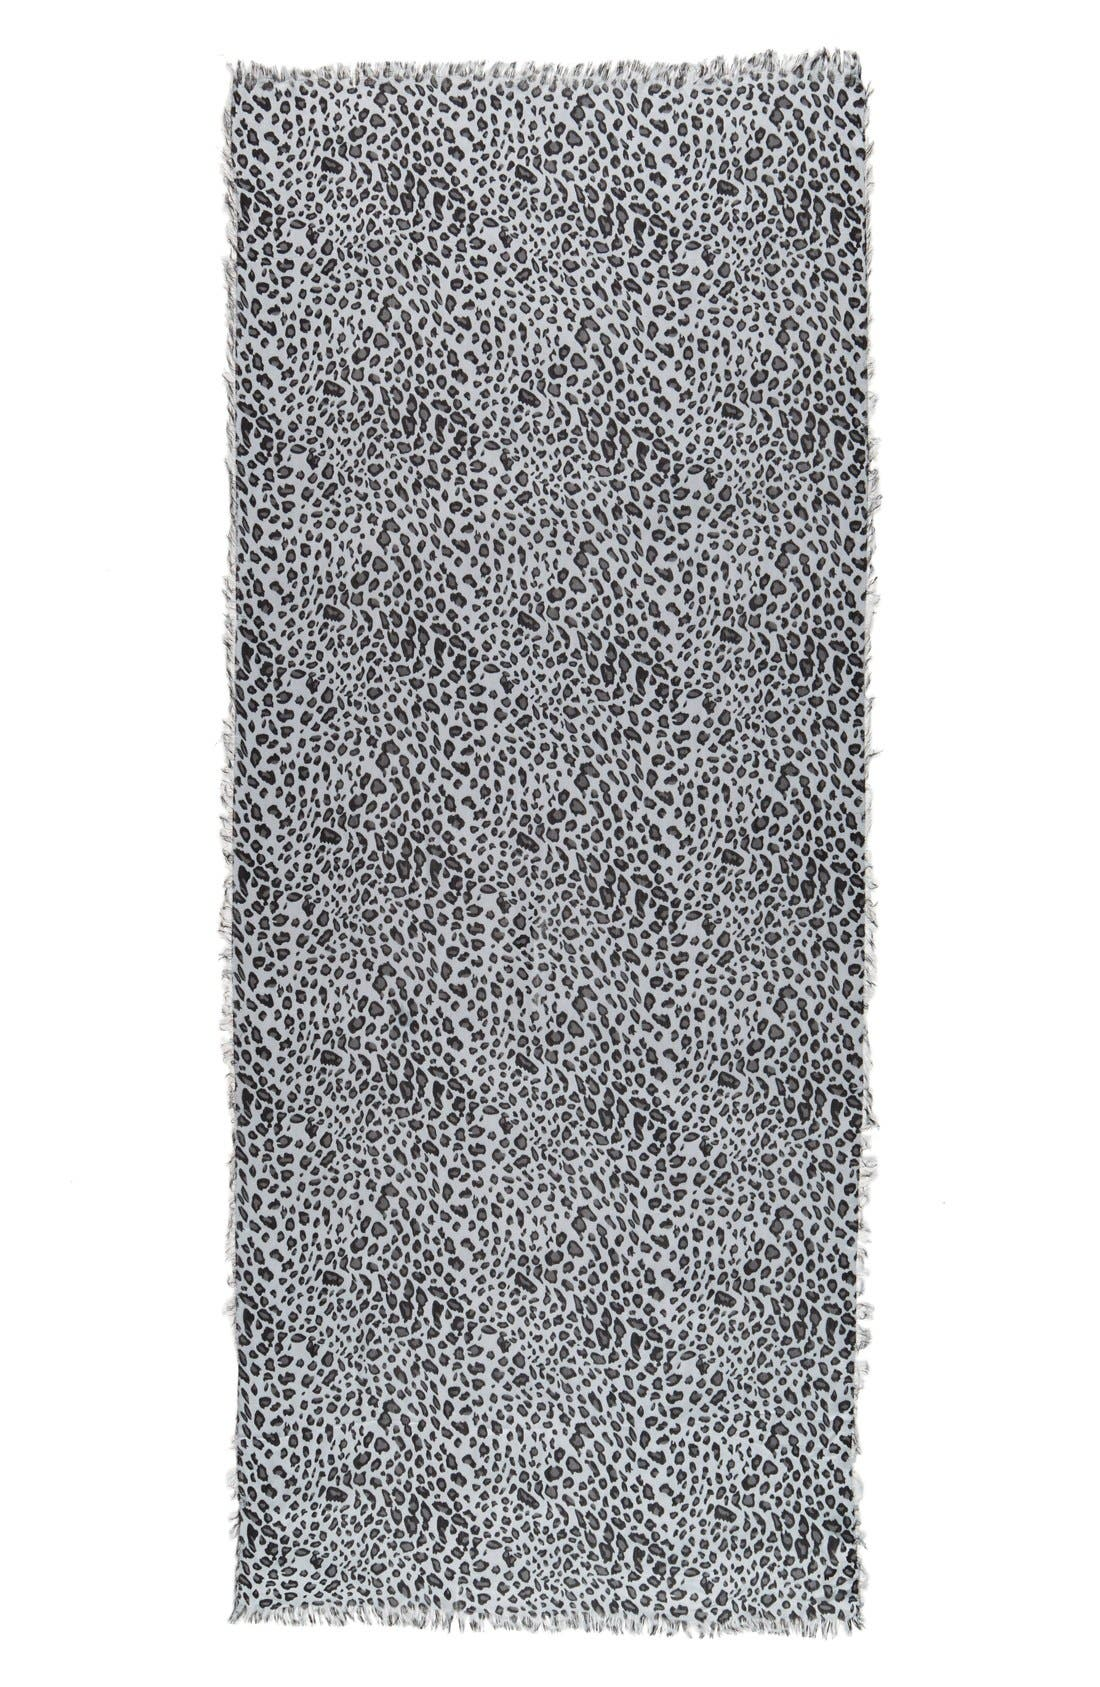 Leopard Print Scarf,                             Alternate thumbnail 2, color,                             Grey